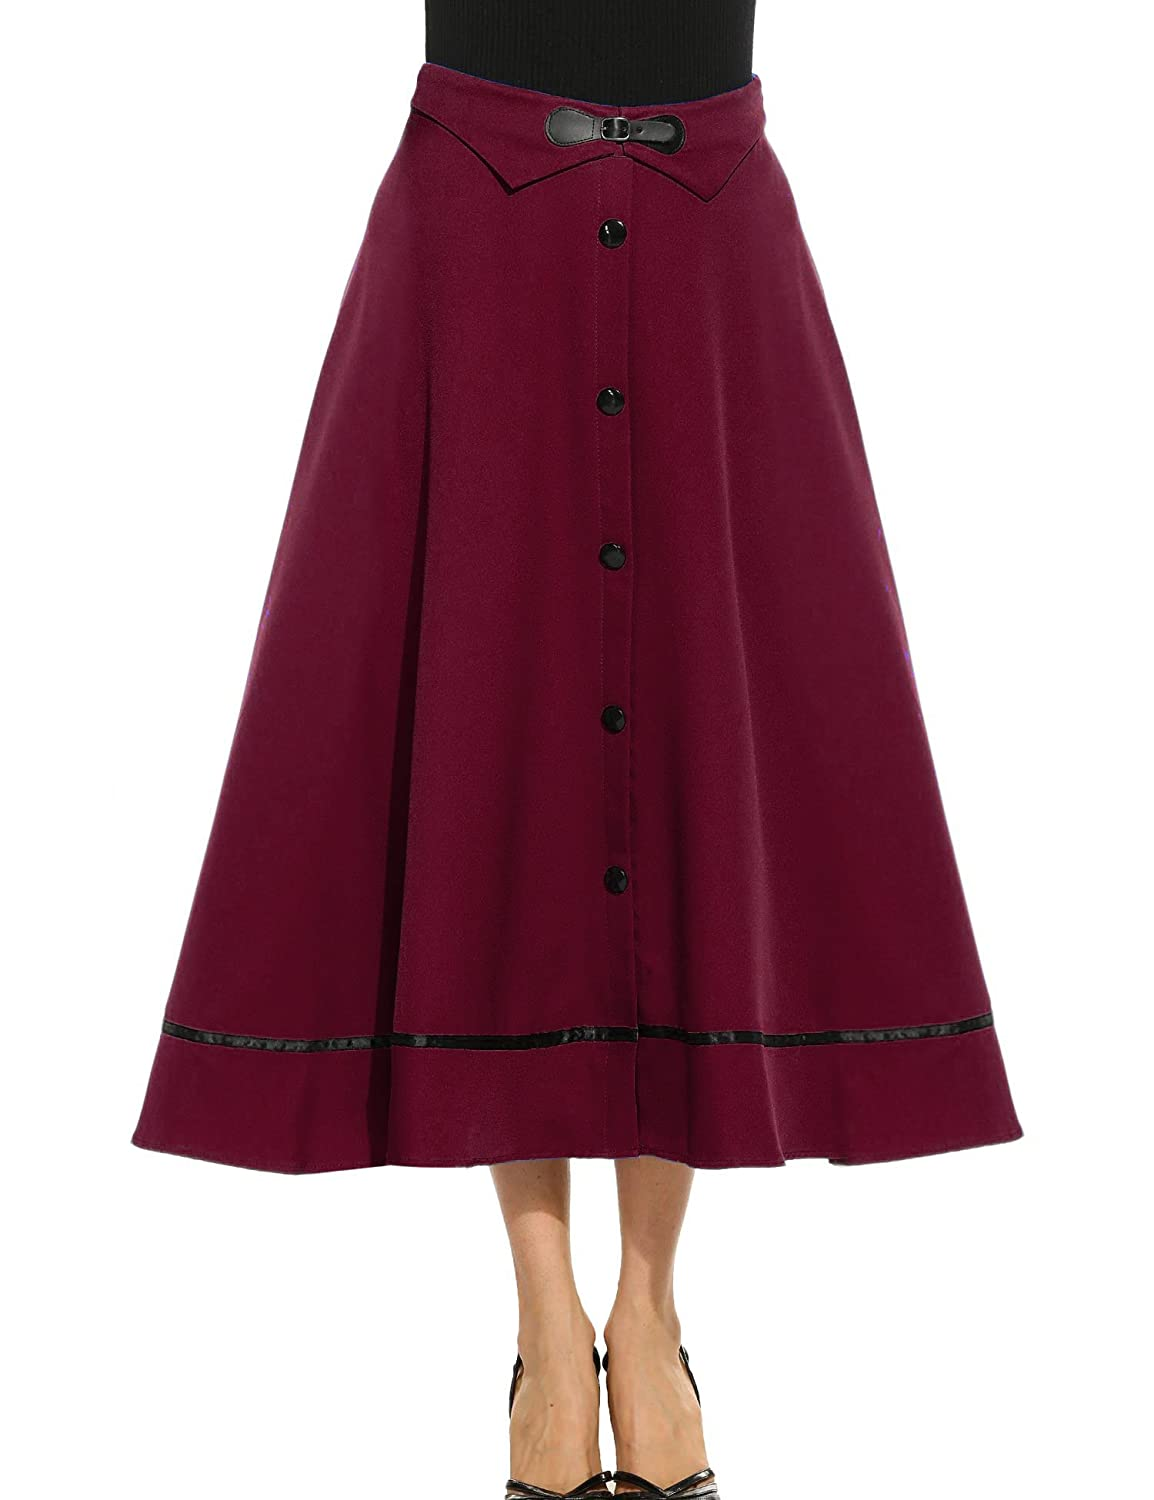 Agent Peggy Carter Costume, Dress, Hats ANGVNS Womens Vintage High Waist Button Down Pleated Swing Skirt $18.99 AT vintagedancer.com